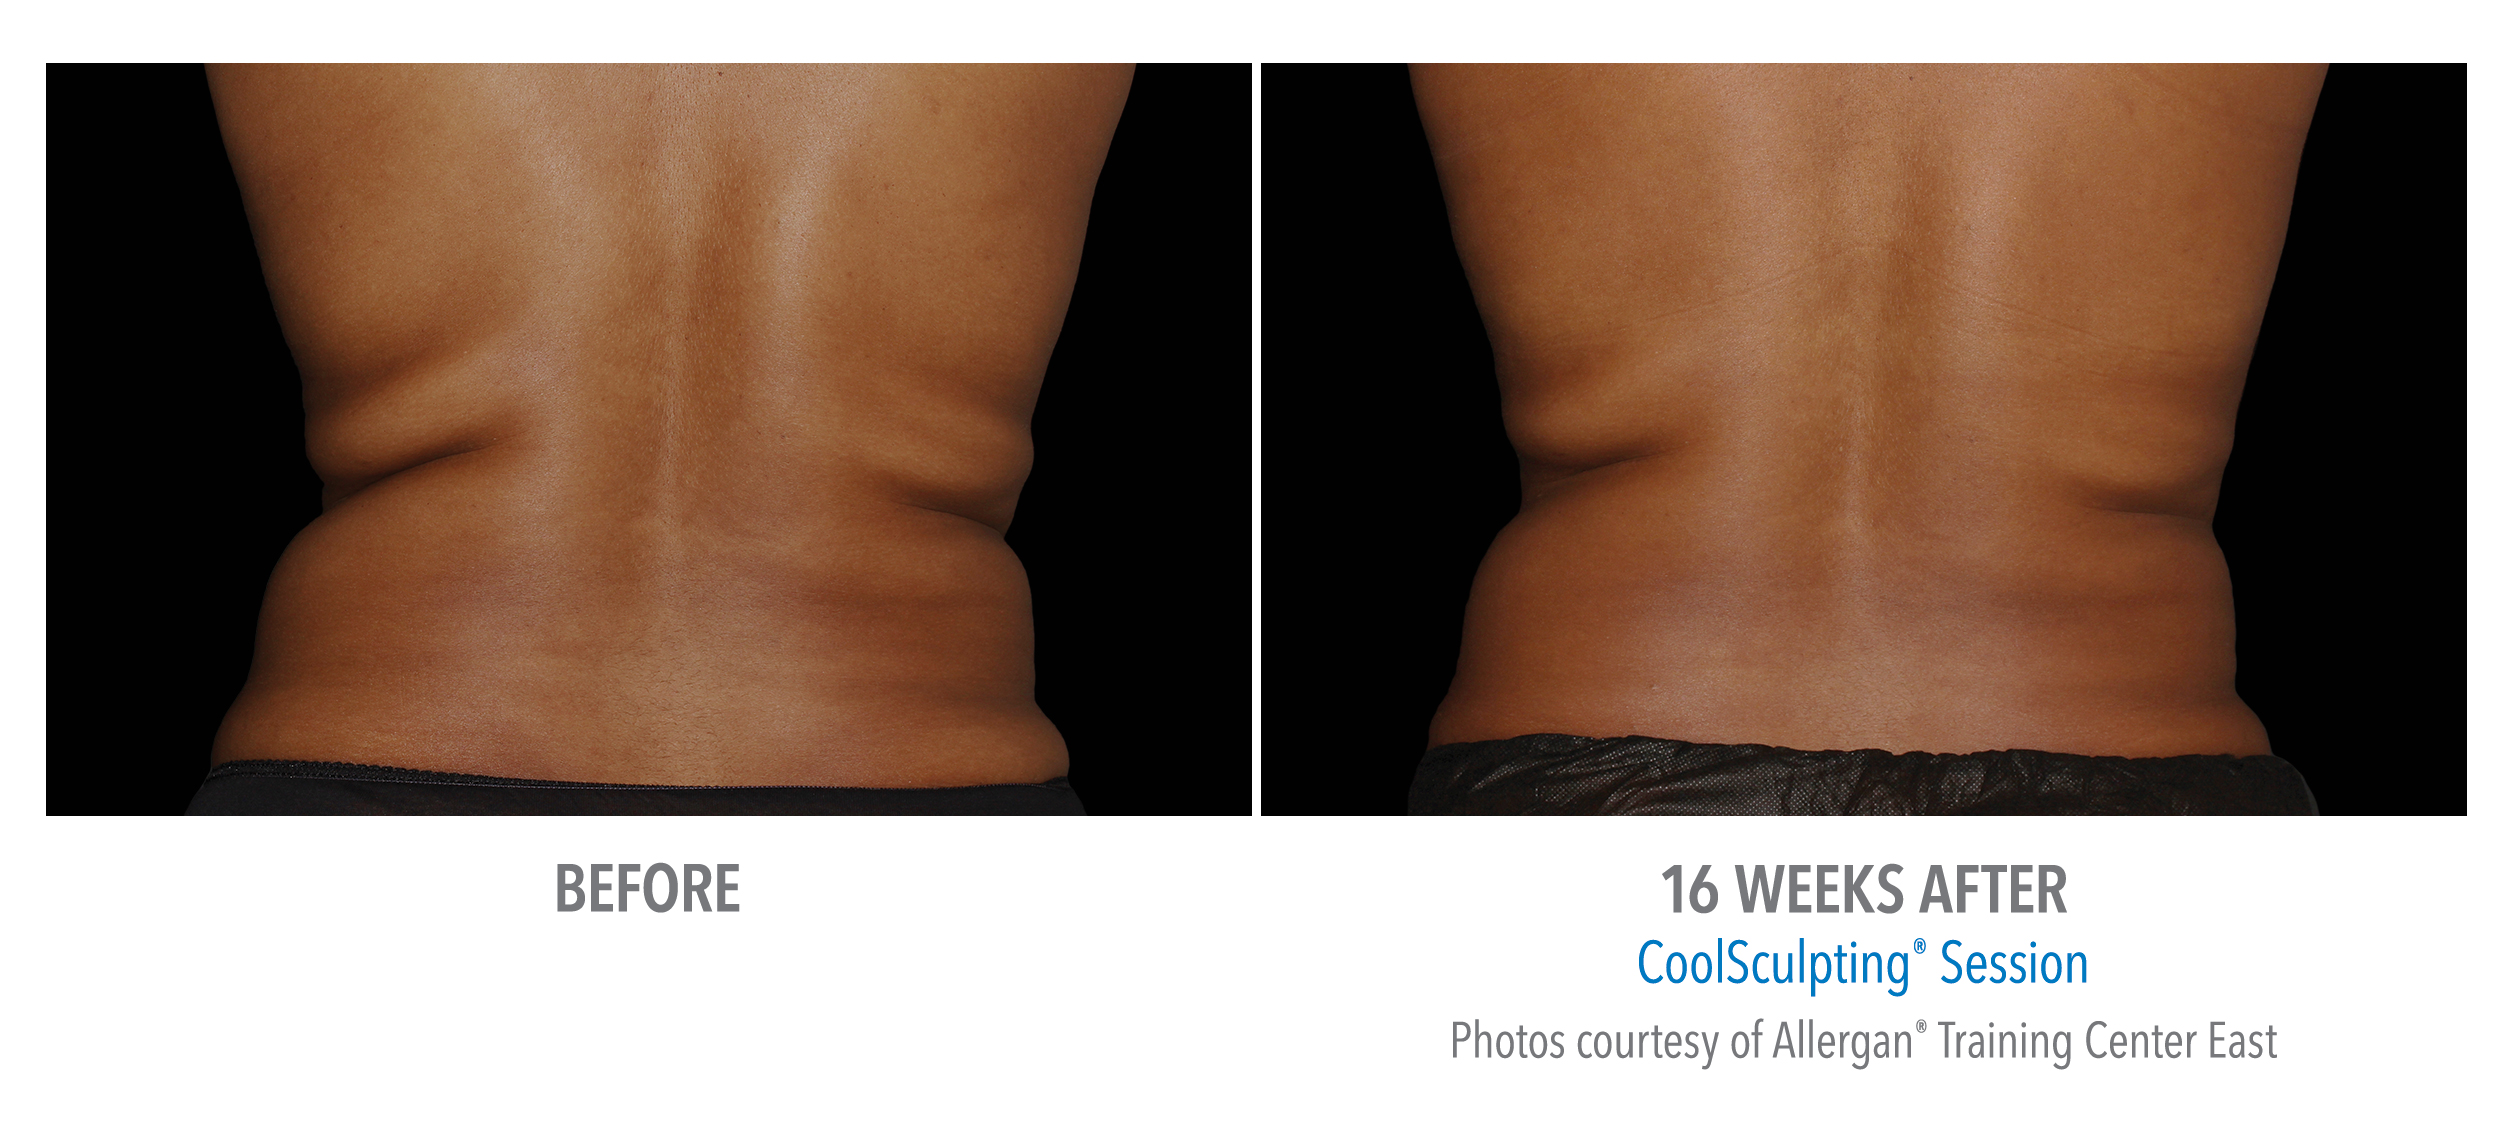 torrance-coolsculpting-back-flank-lower flank-coolsculpting5